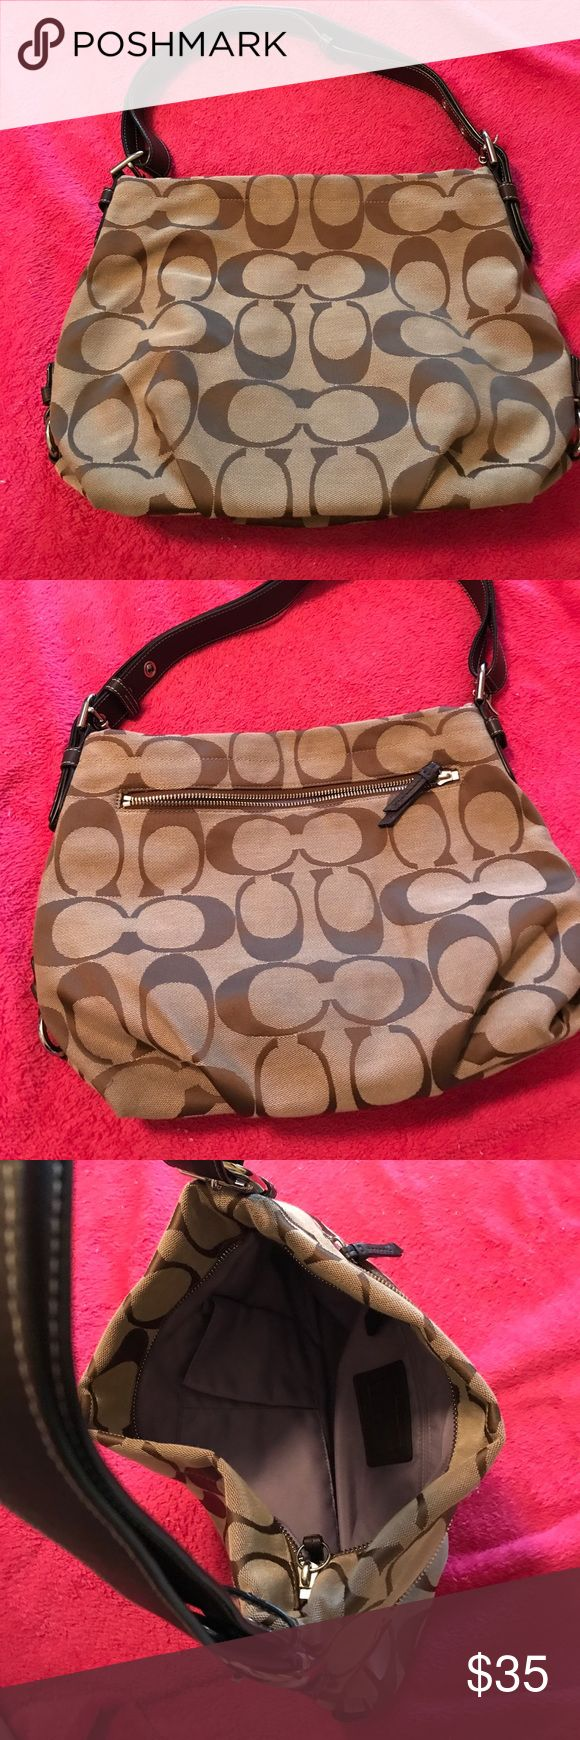 Authentic Coach Pocketbook Coach Pocketbook with the signature Coach pattern! Tons of room & an extendable strap! No signs of wear & no stains. (Darker colors in photo are shadows from light) Kept in a smoke free home! Great Condition!! Coach Bags